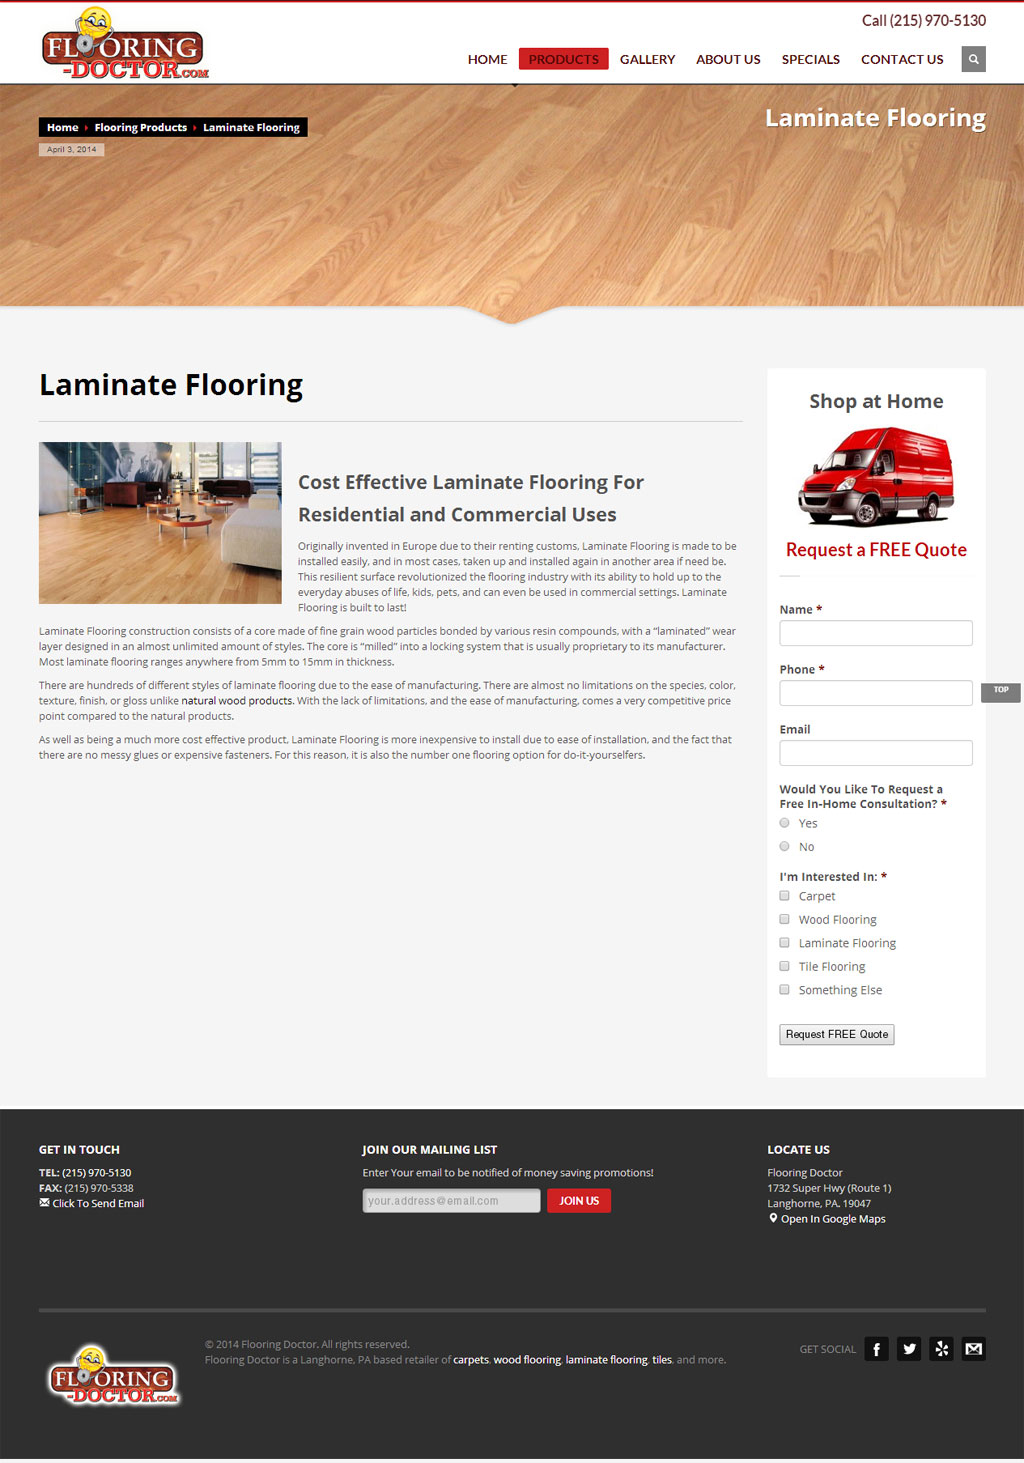 Flooring Doctor Inside Page